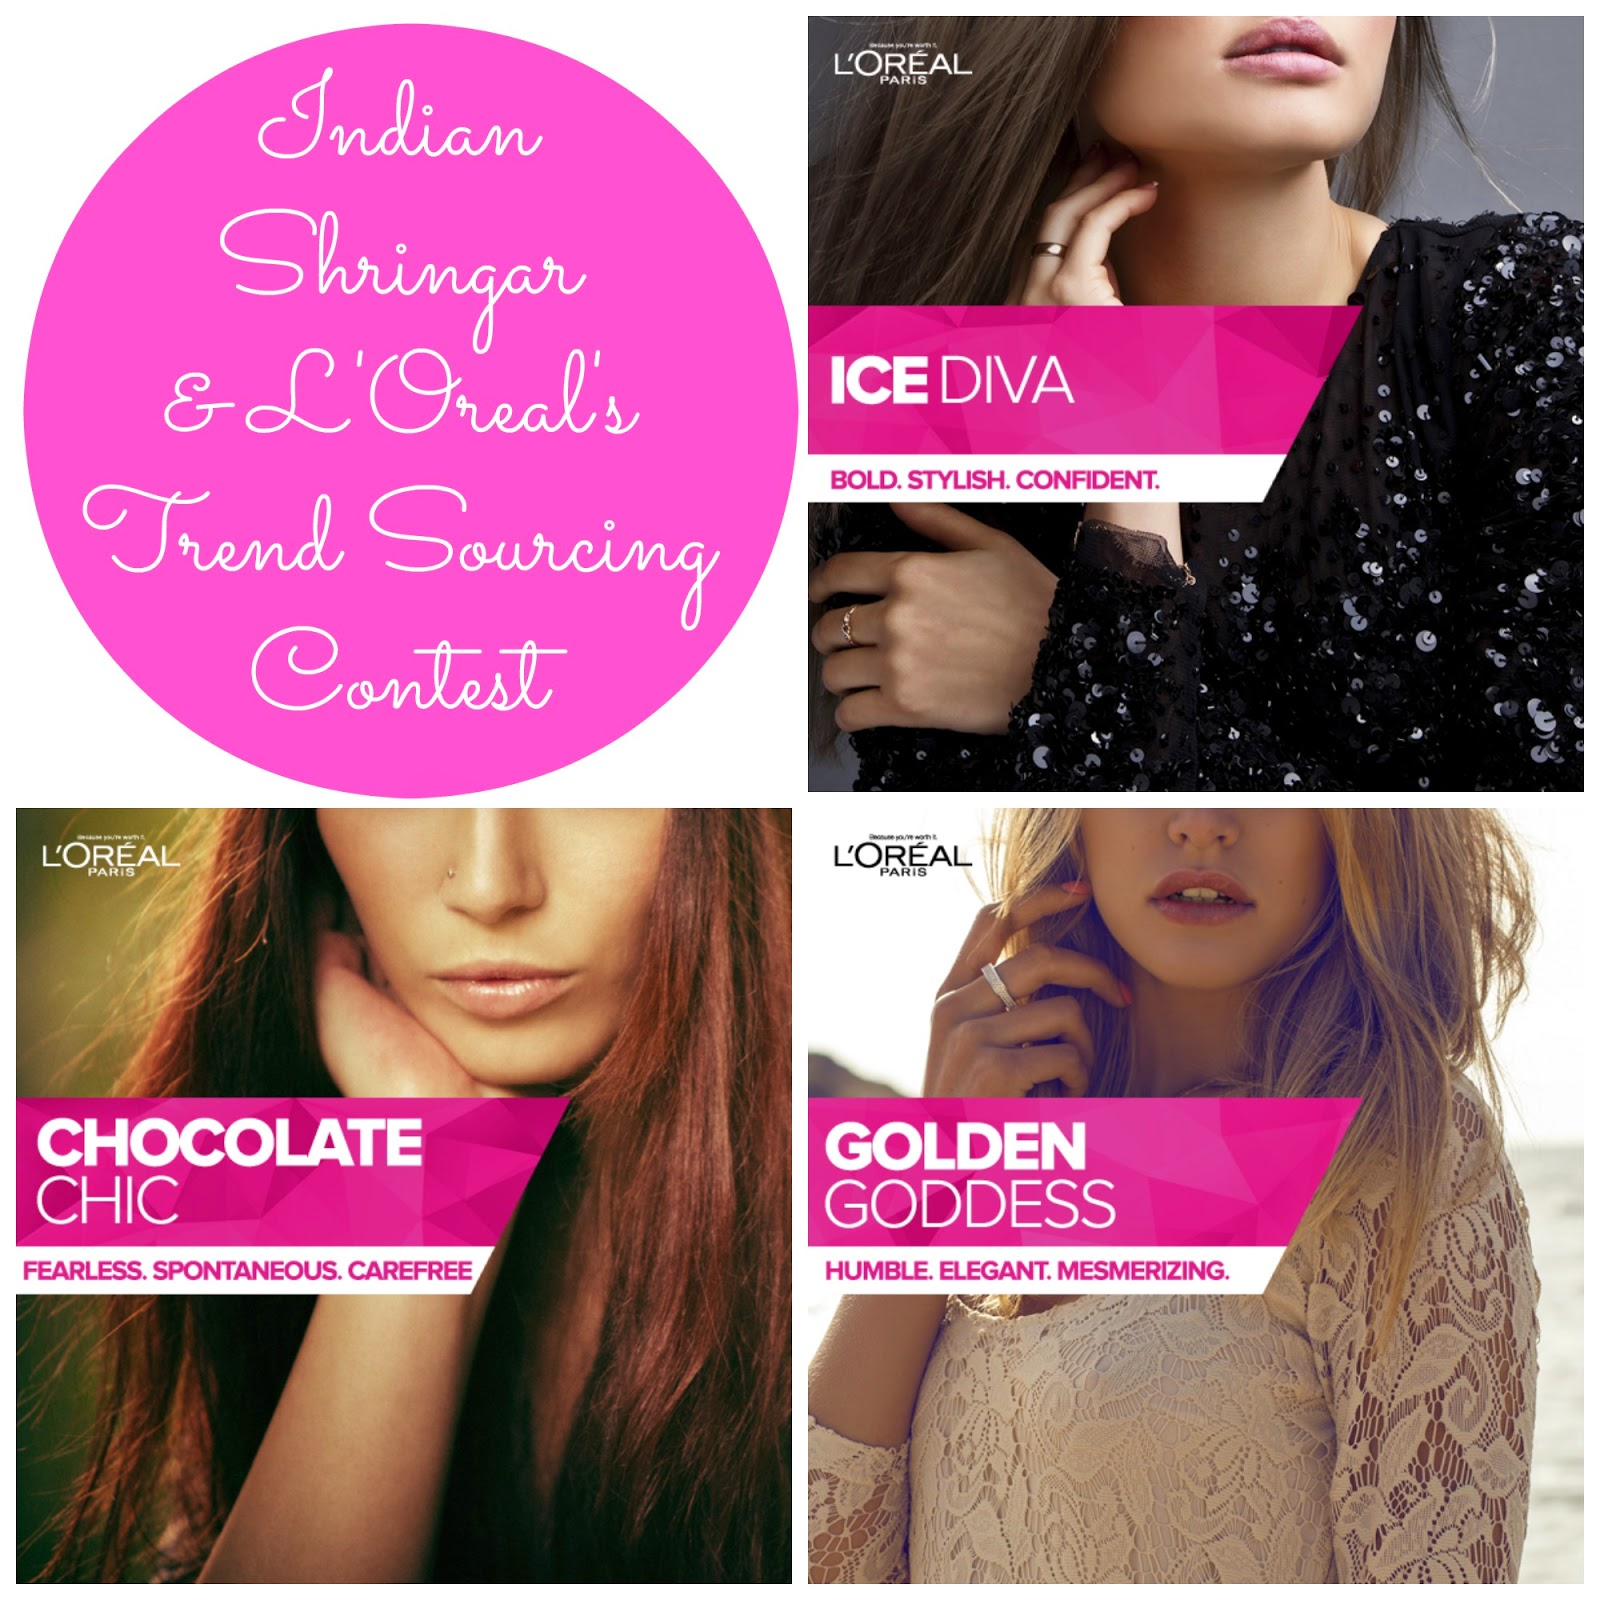 Indian Shringar and L'Oreal's Trend Sourcing Contest